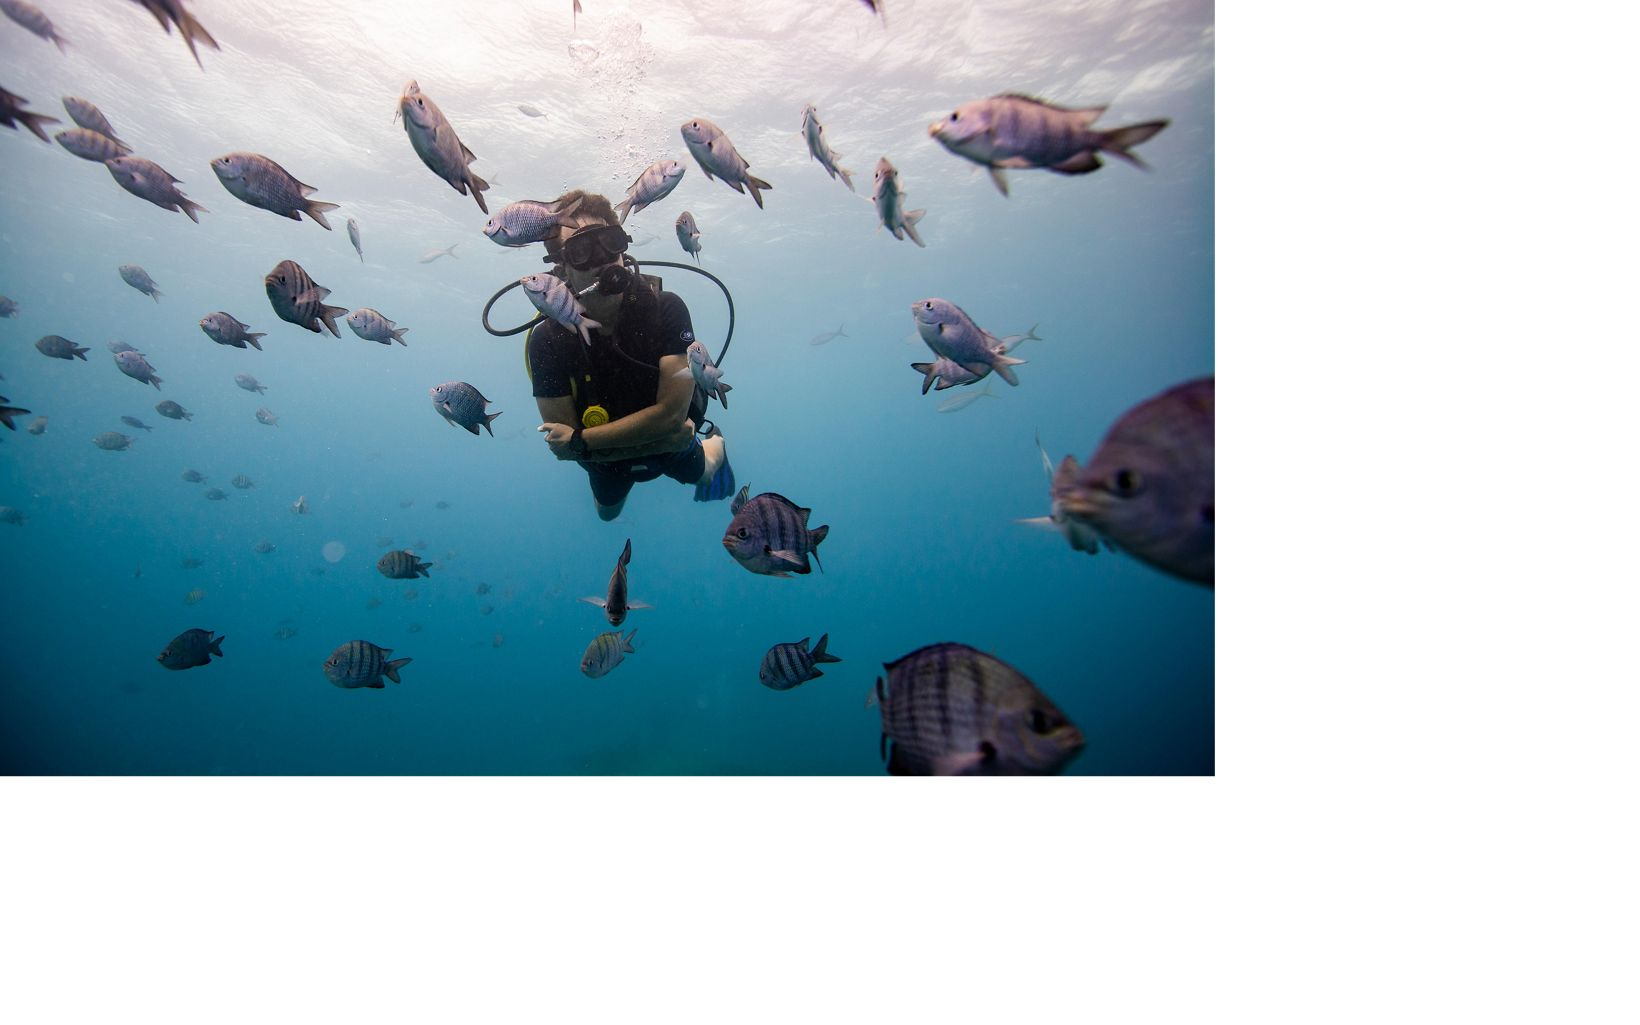 A diver in the Caribbean Sea.